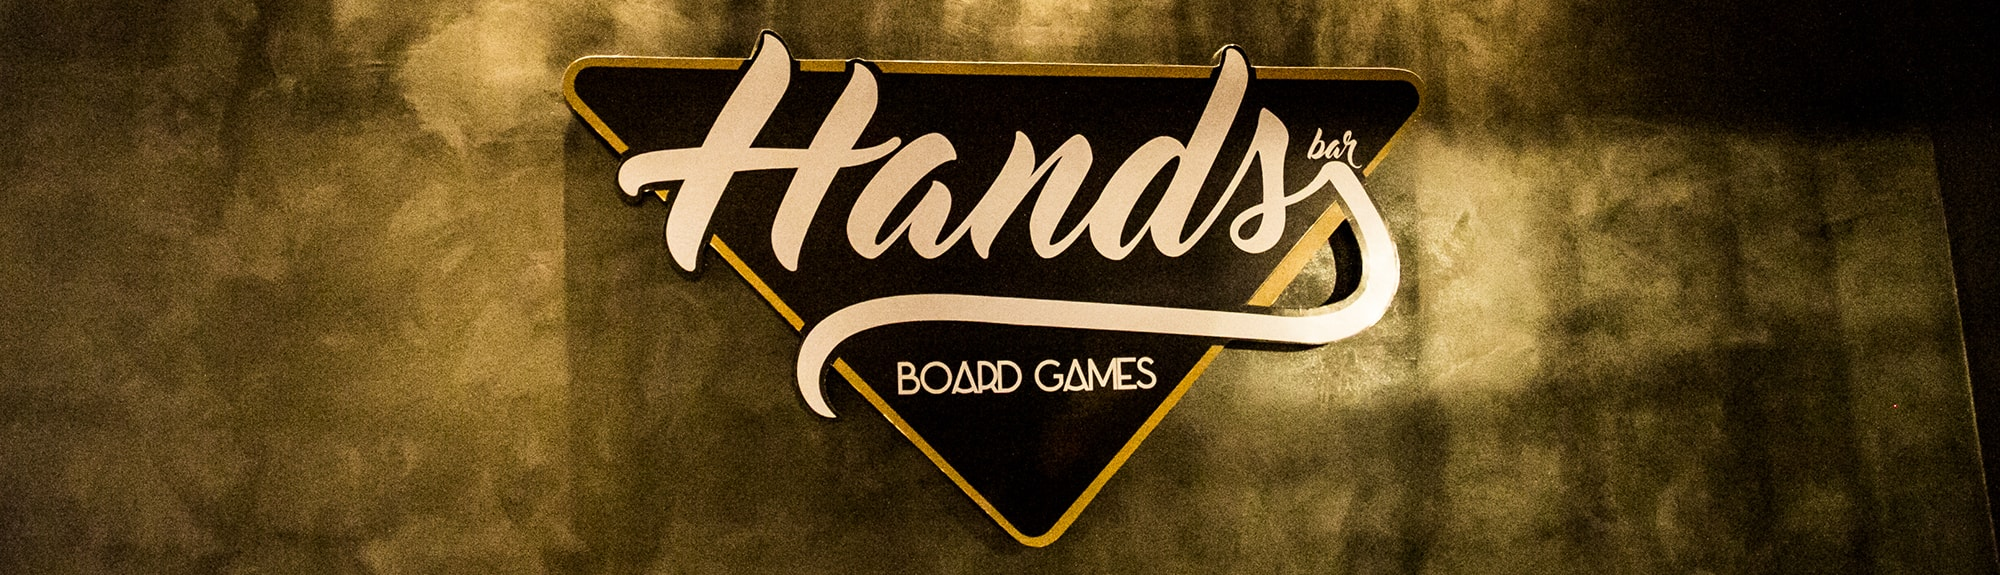 Hands Bar Board Games